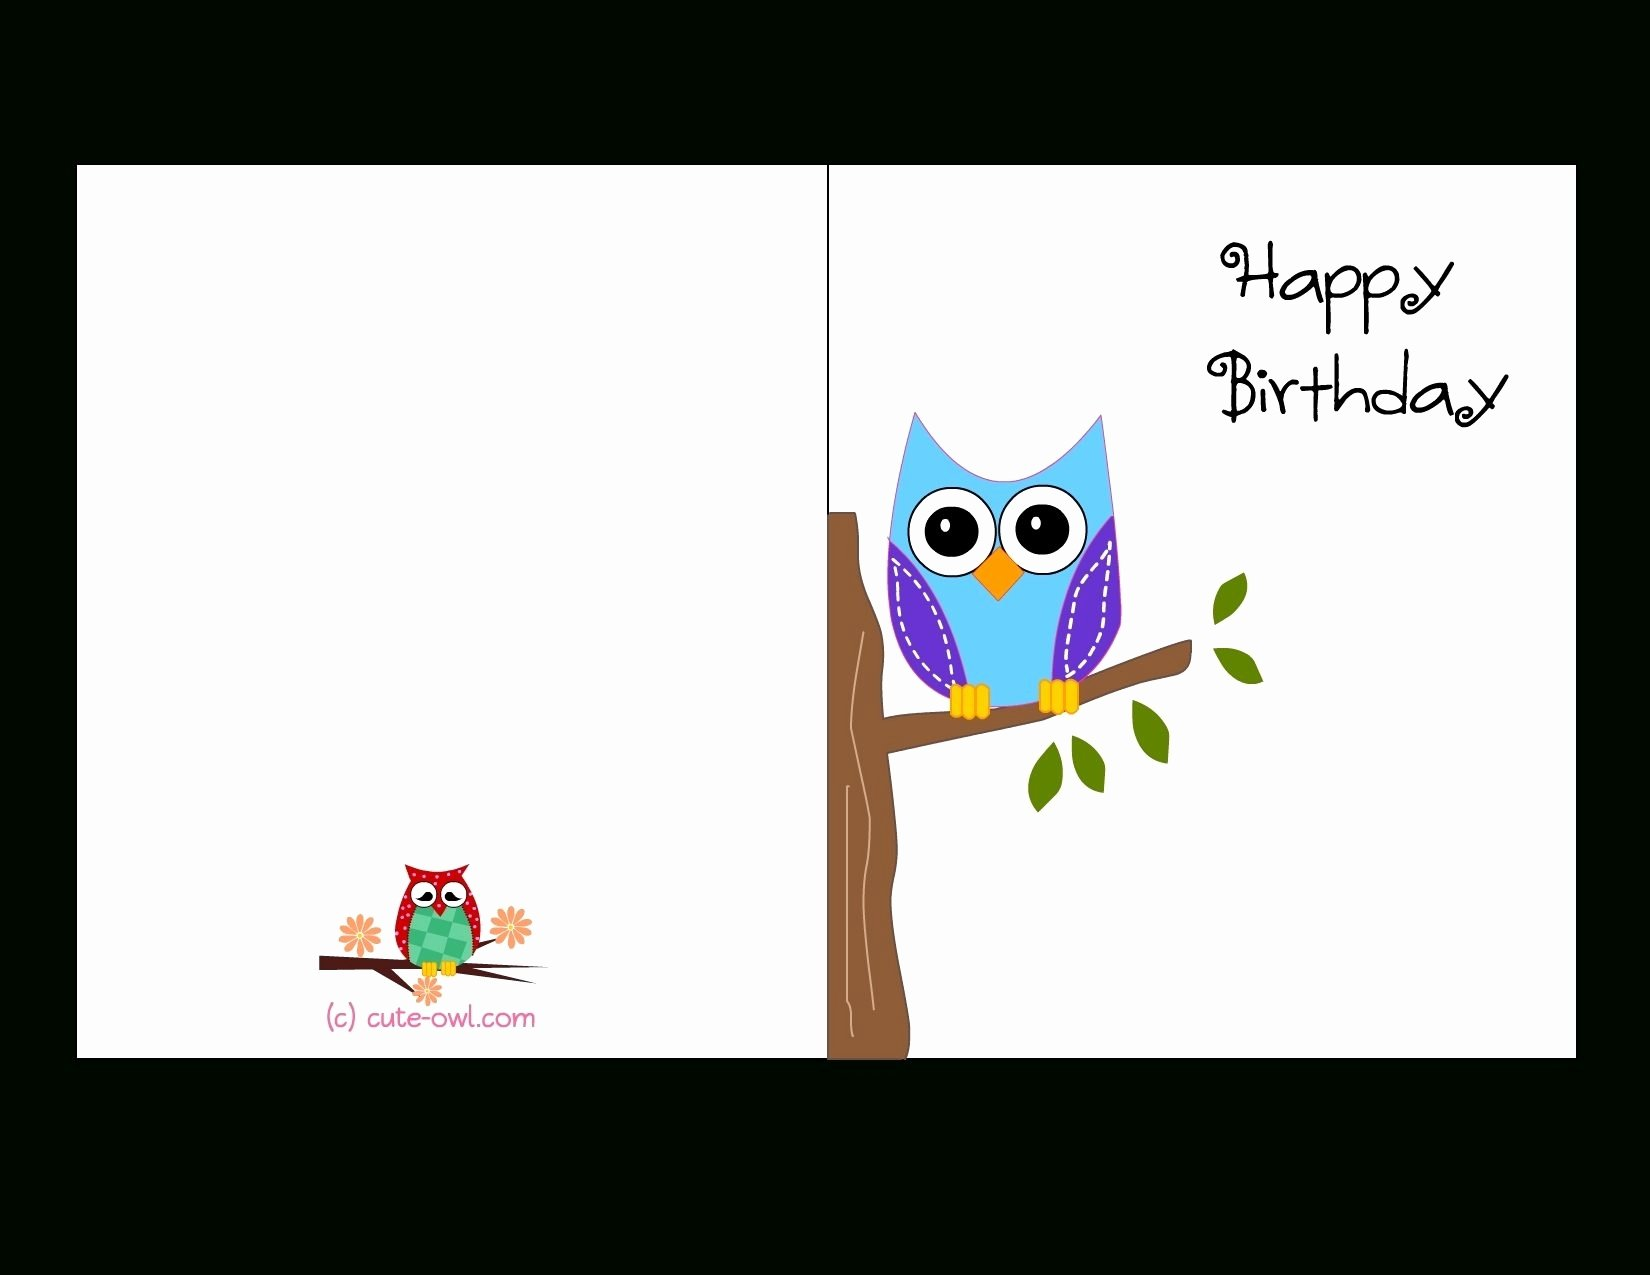 Birthday Card Template Photoshop Inspirational Birthday Card Template Printable Beepmunk